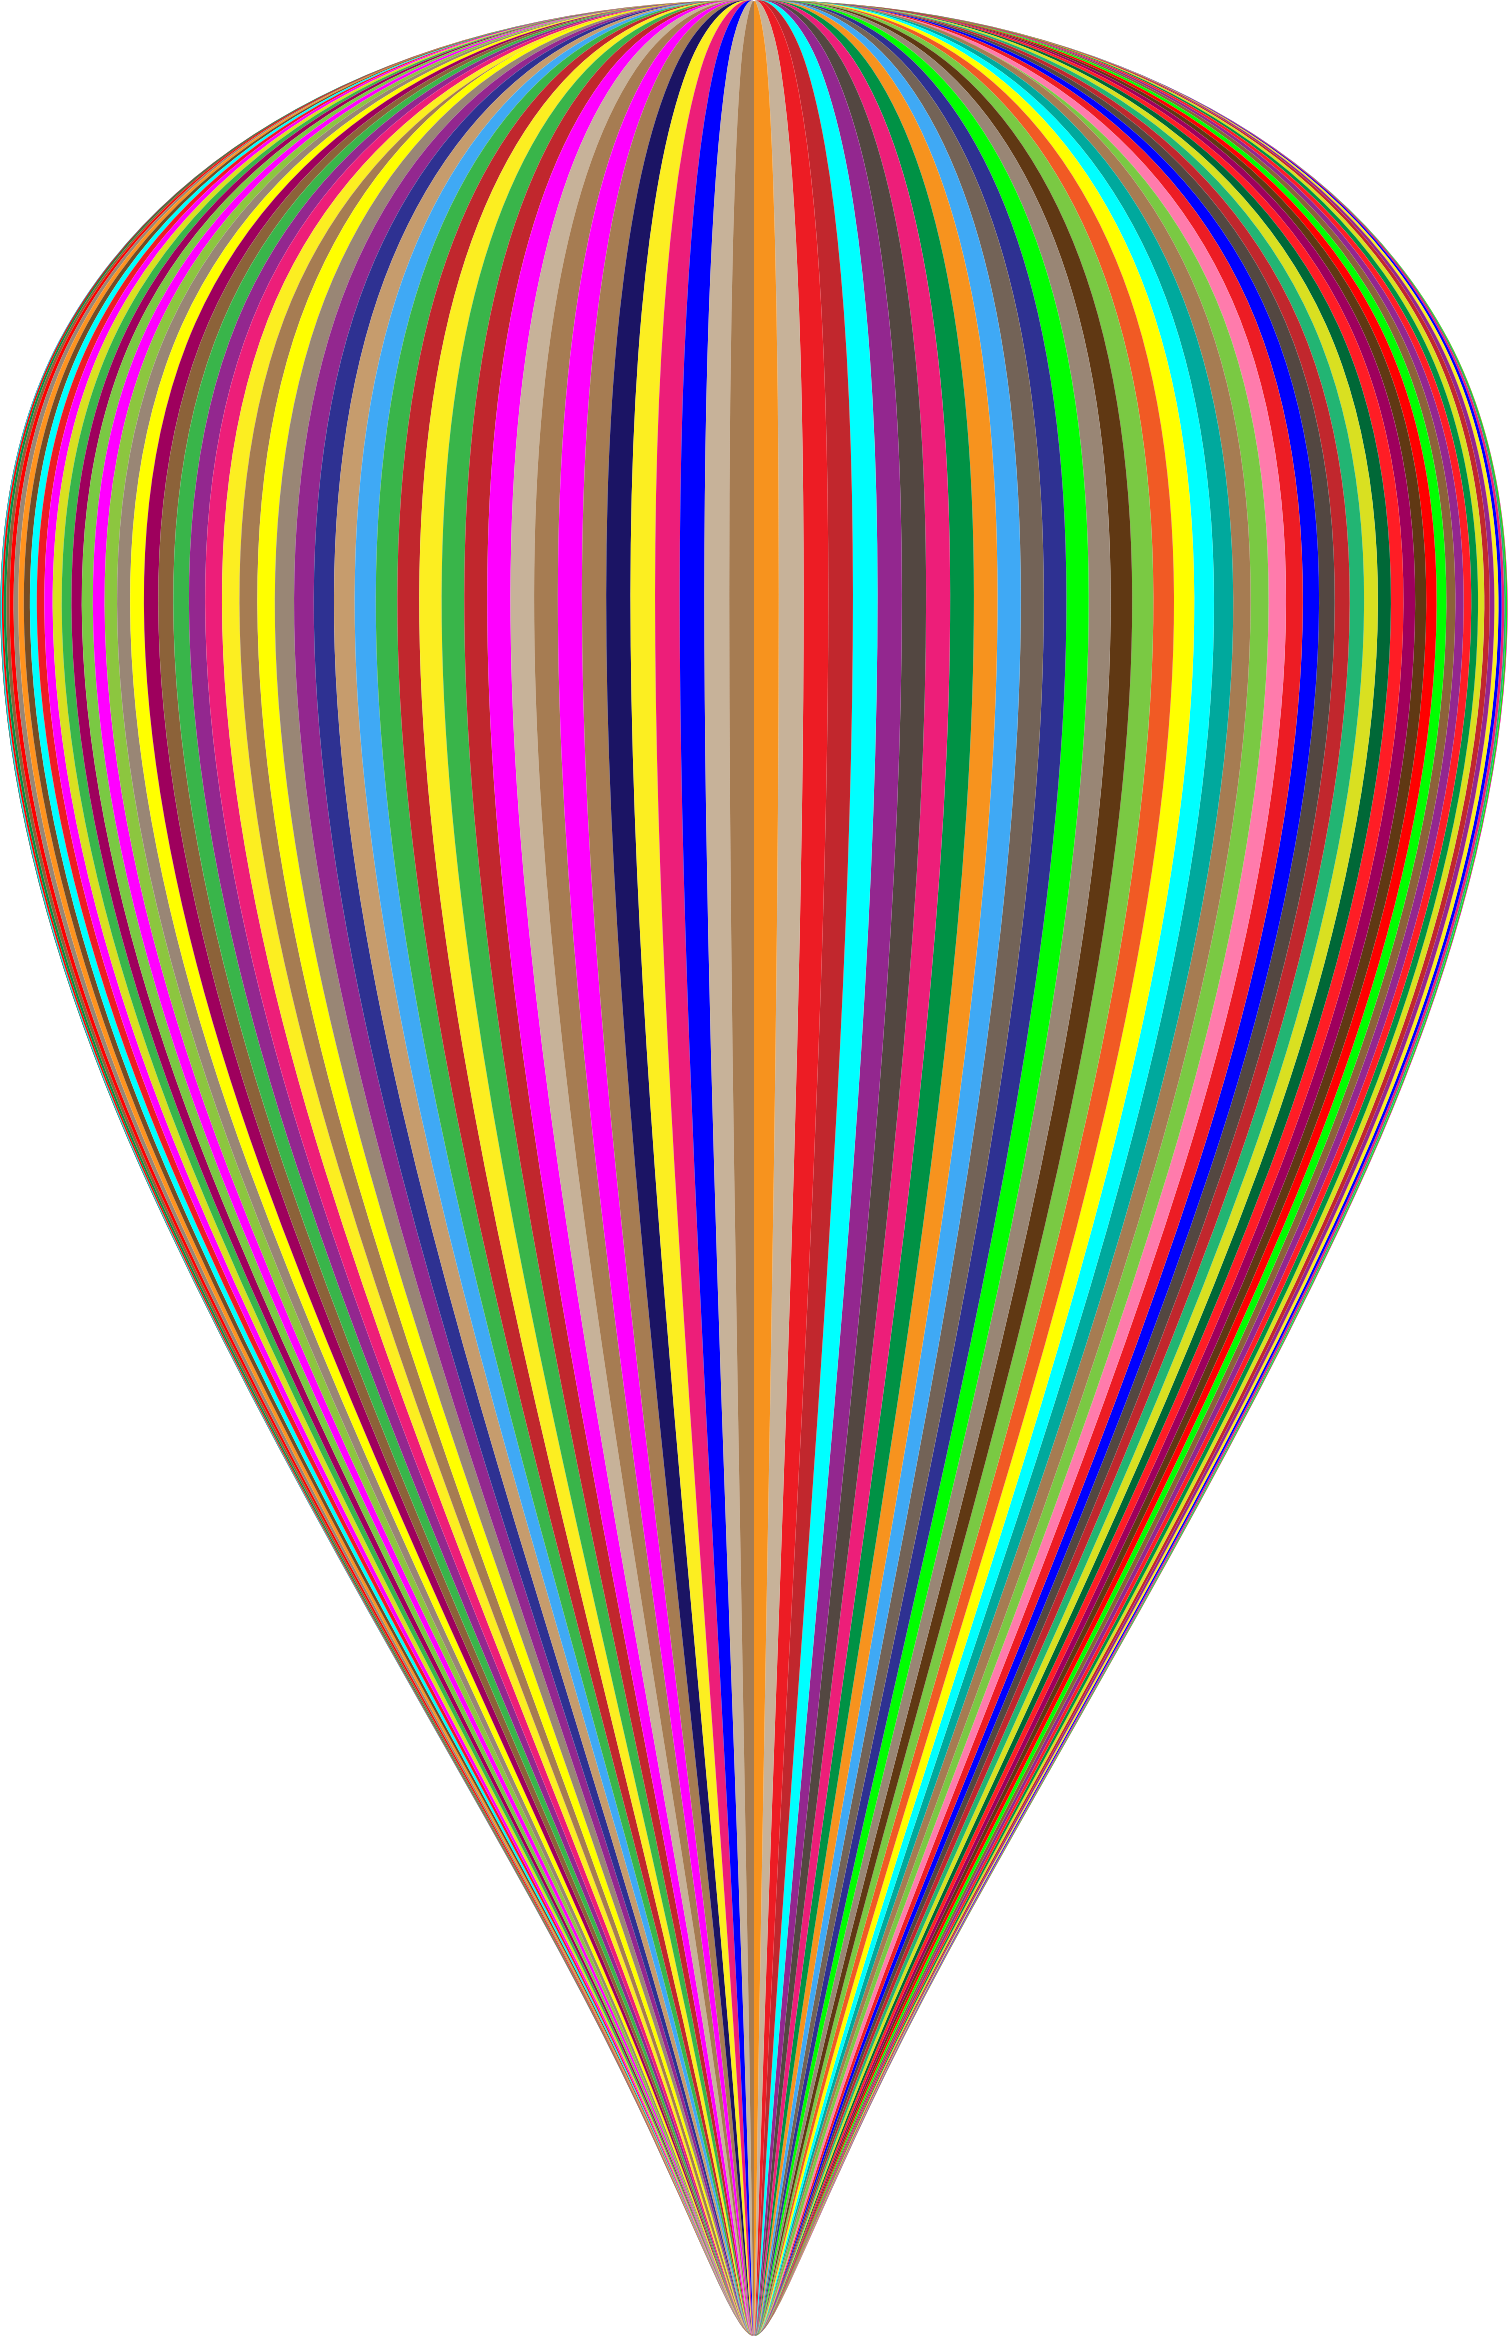 Clipart - Colorful Striped Balloon